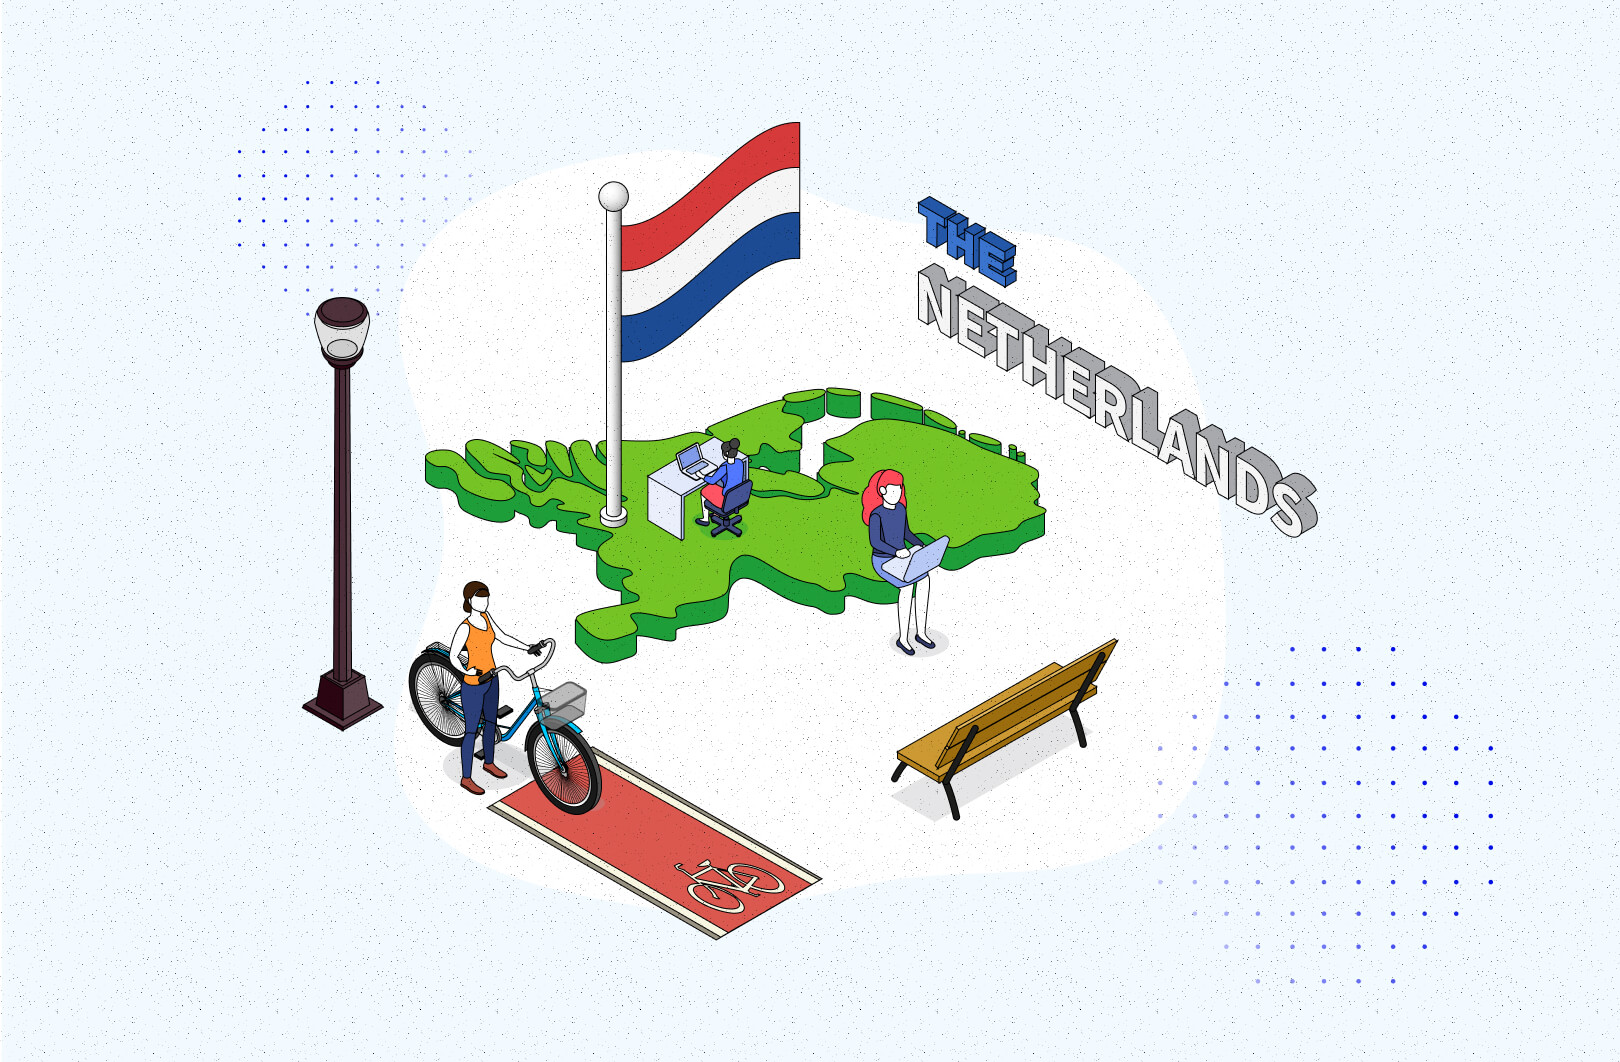 Where to find the top software companies in the Netherlands? 2021 IT market guide for CTOs